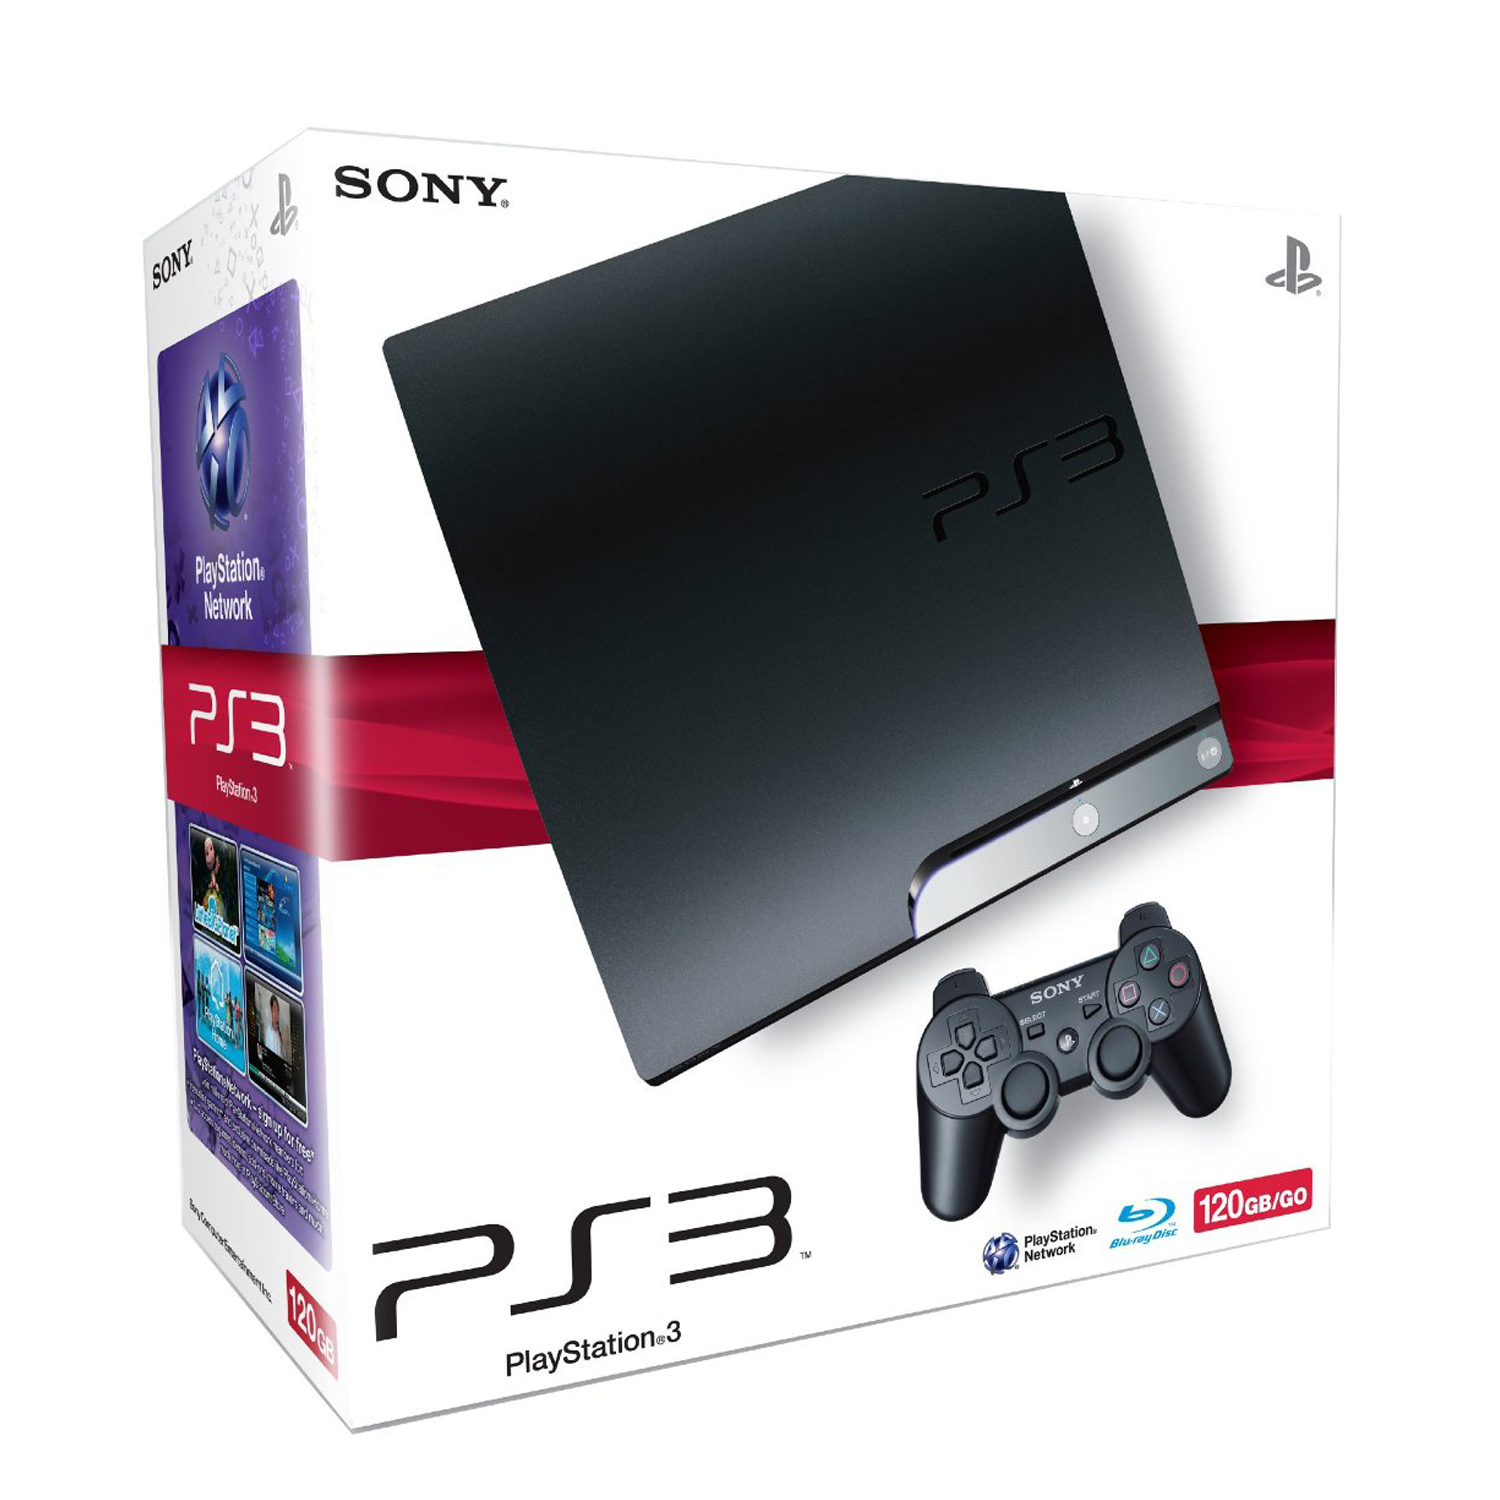 sony playstation 3 ps3 slim console black 120gb hdd built in blu ray disc player ebay. Black Bedroom Furniture Sets. Home Design Ideas